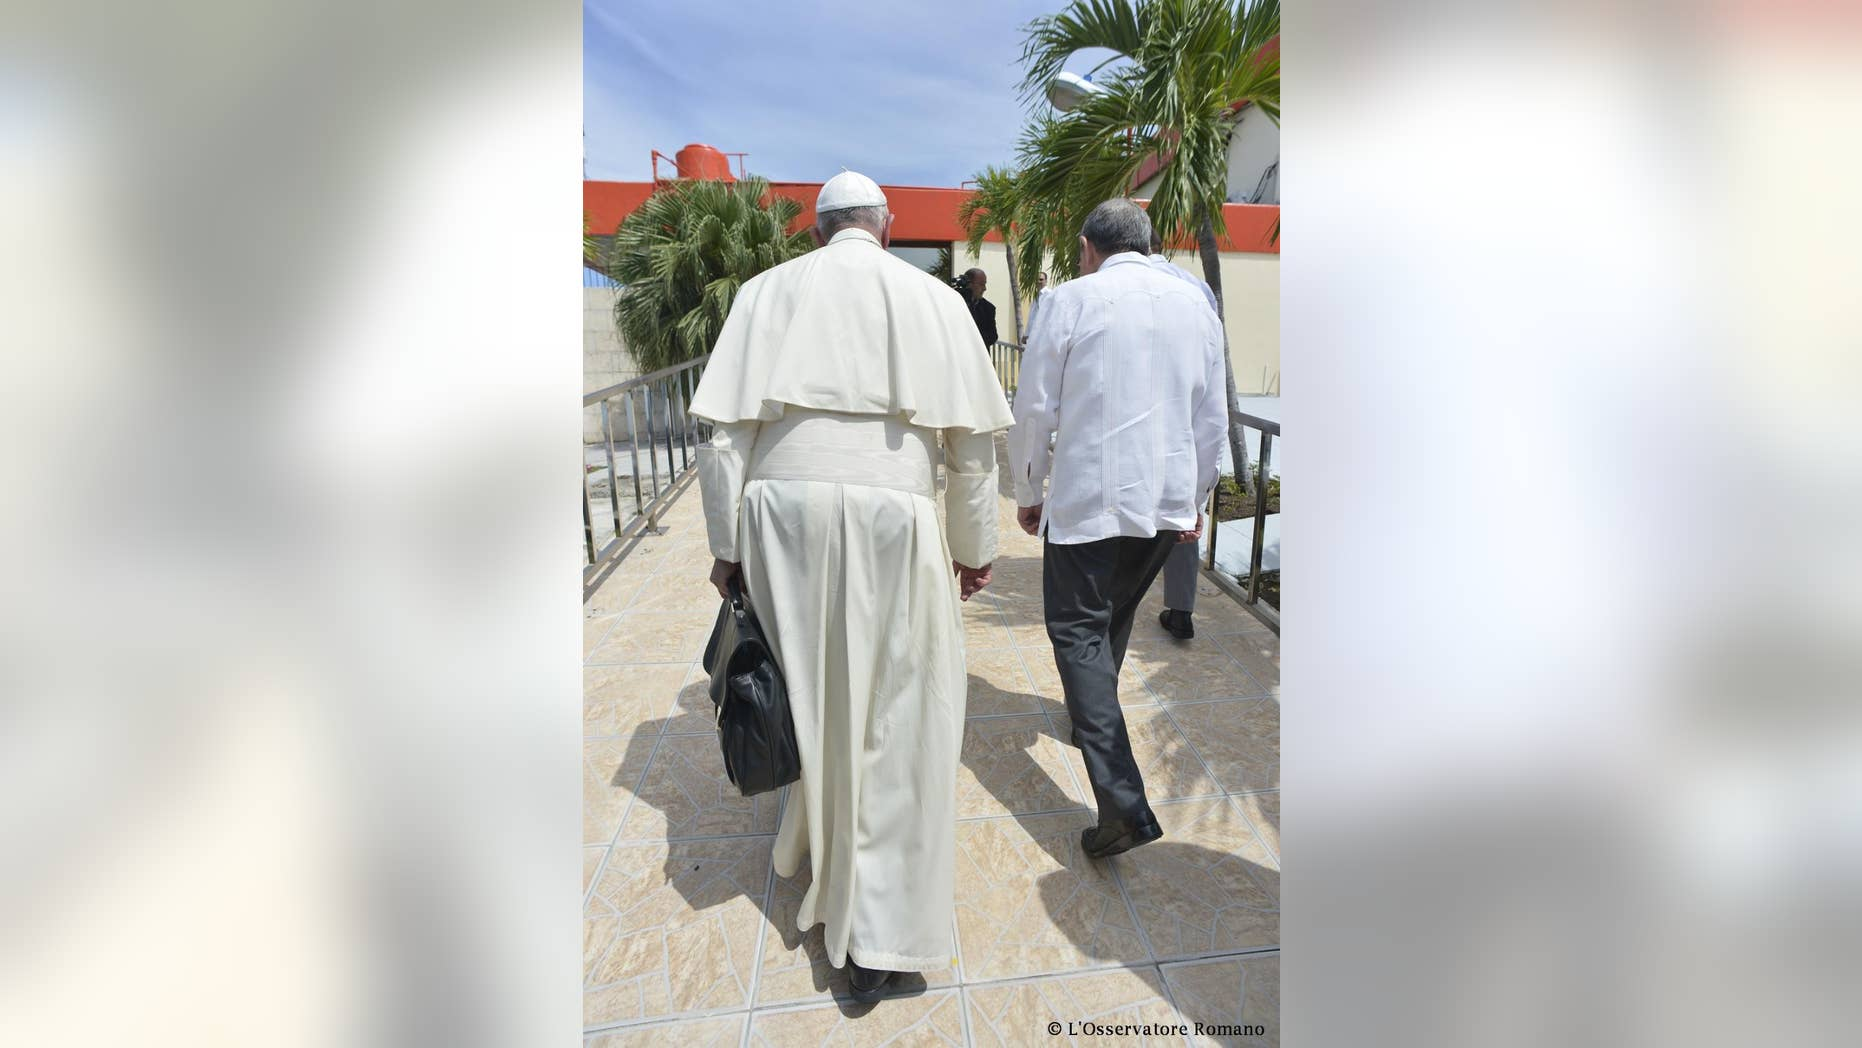 In this photo taken Tuesday, Sept. 22, 2015, Pope Francis talks with Cuba's President Raul Castro during his farewell ceremony at the airport in Santiago, Cuba. Pope Francis wrapped up his visit to Cuba Tuesday by celebrating Mass at the country's most revered shrine and giving a pep talk with families before flying north to Washington for the start of his U.S. tour. (L'Osservatore Romano/Pool Photo via AP)